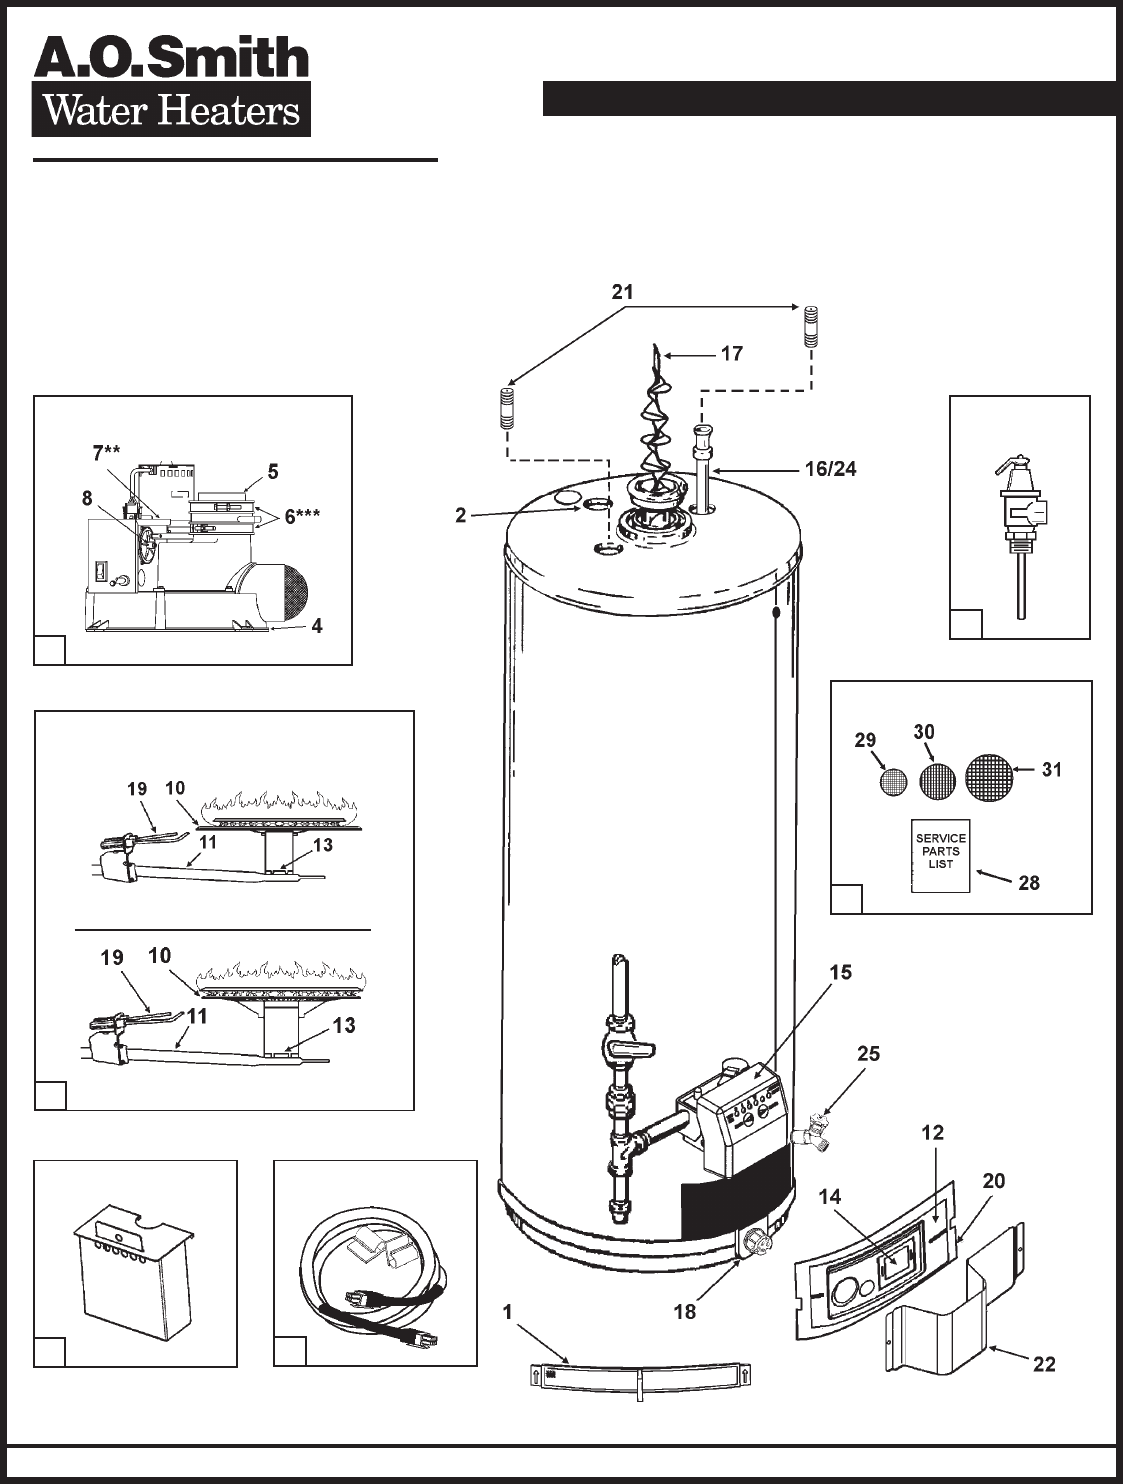 ao smith electric water heater wiring diagram with Water Heater Gas Valve Problems on Motor Space Heater Wiring Diagram further Burnham Steam Boilers Residential additionally Hayward Motor Wiring Diagram also 220 To 110 Wiring Wiring Diagrams also Smith Heater Wiring Diagram.